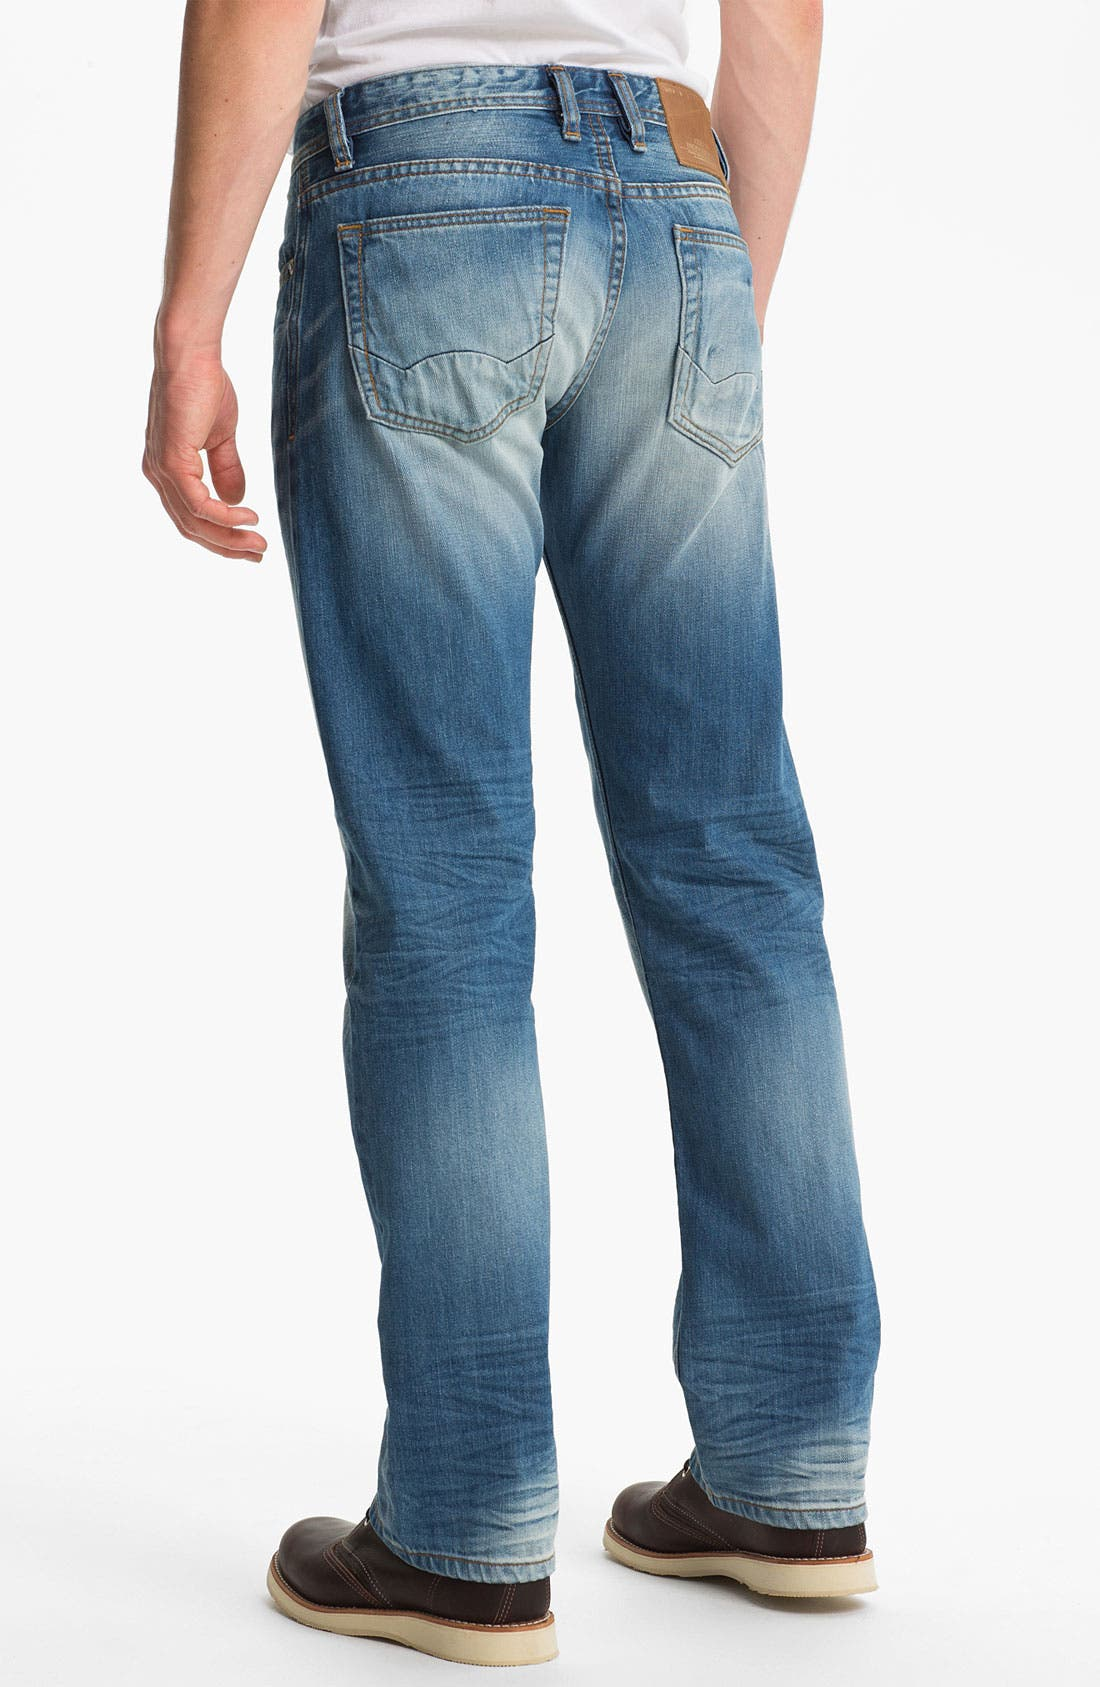 Main Image - Cult of Individuality 'Rebel' Straight Leg Selvedge Jeans (Crafted)